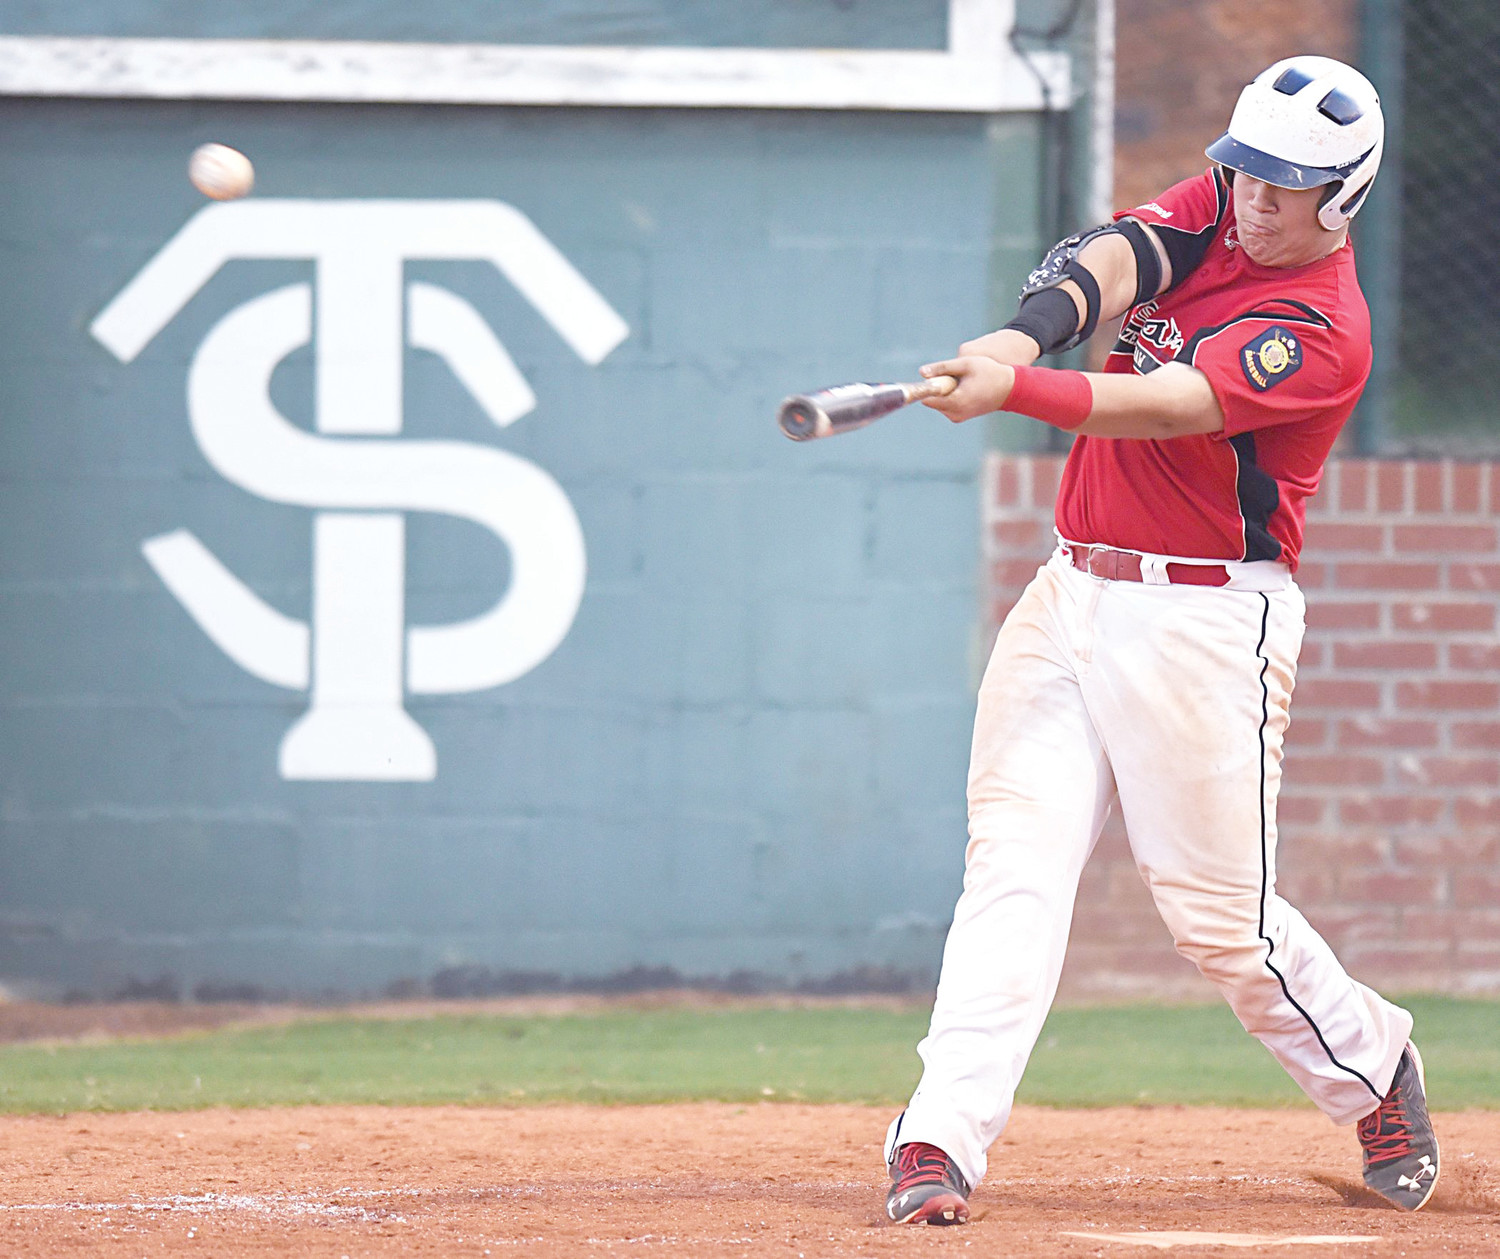 Lenny Gonzalez, shown playing for Dalzell-Shaw Post 175, is back for his sophomore season at USC Sumter and will start at first base today when the Fire Ants open their season. They will play doubleheaders today and on Saturday against Pitt Community College in Greenville, N.C.